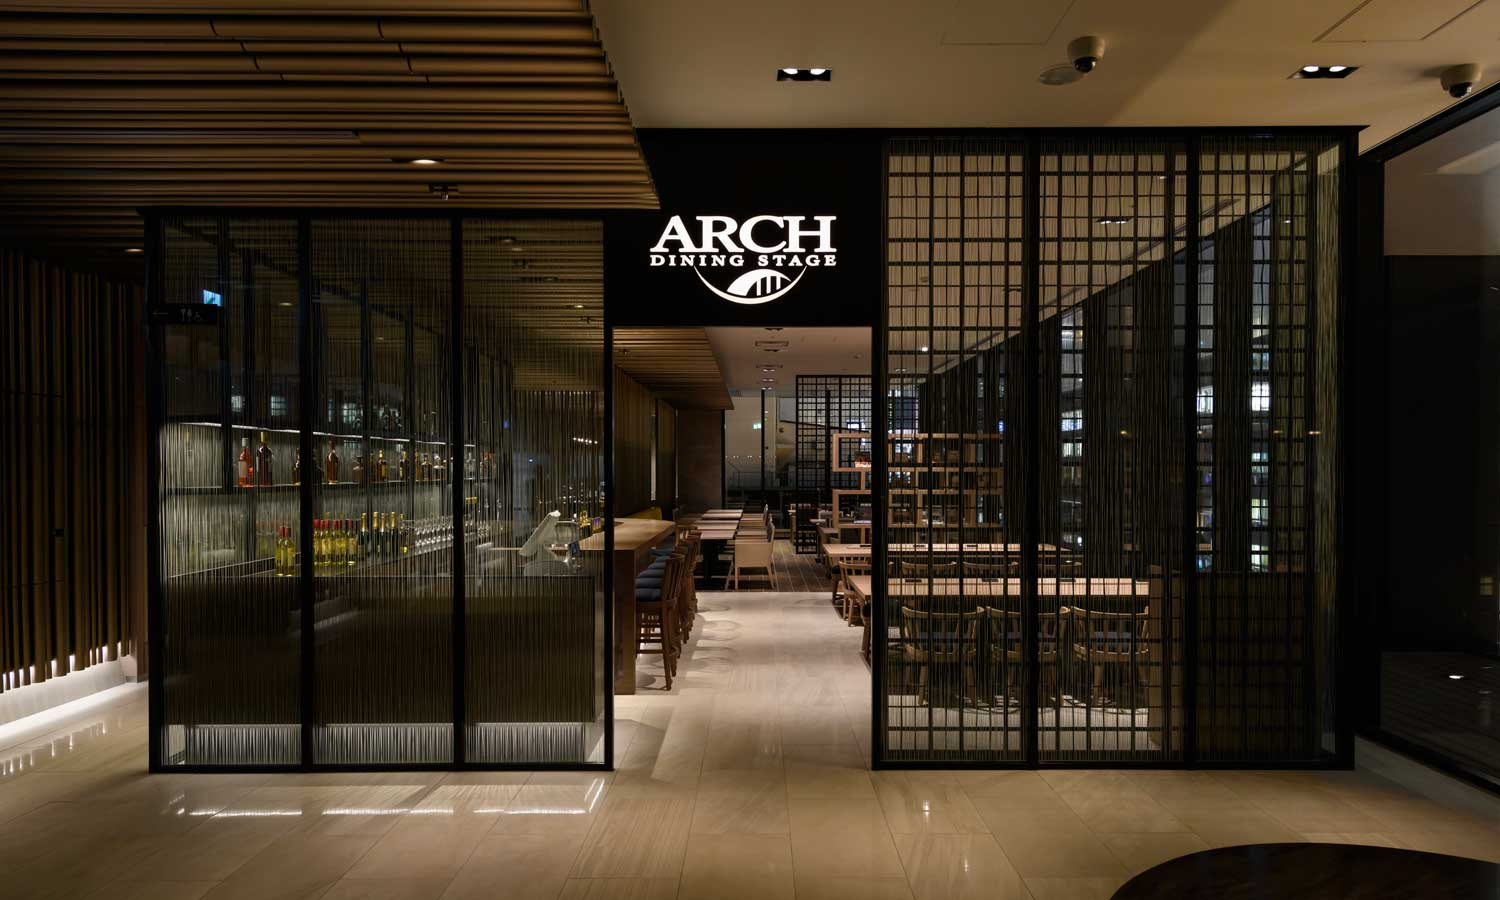 DINING STAGE ARCH | remm Tokyo Kyobashi